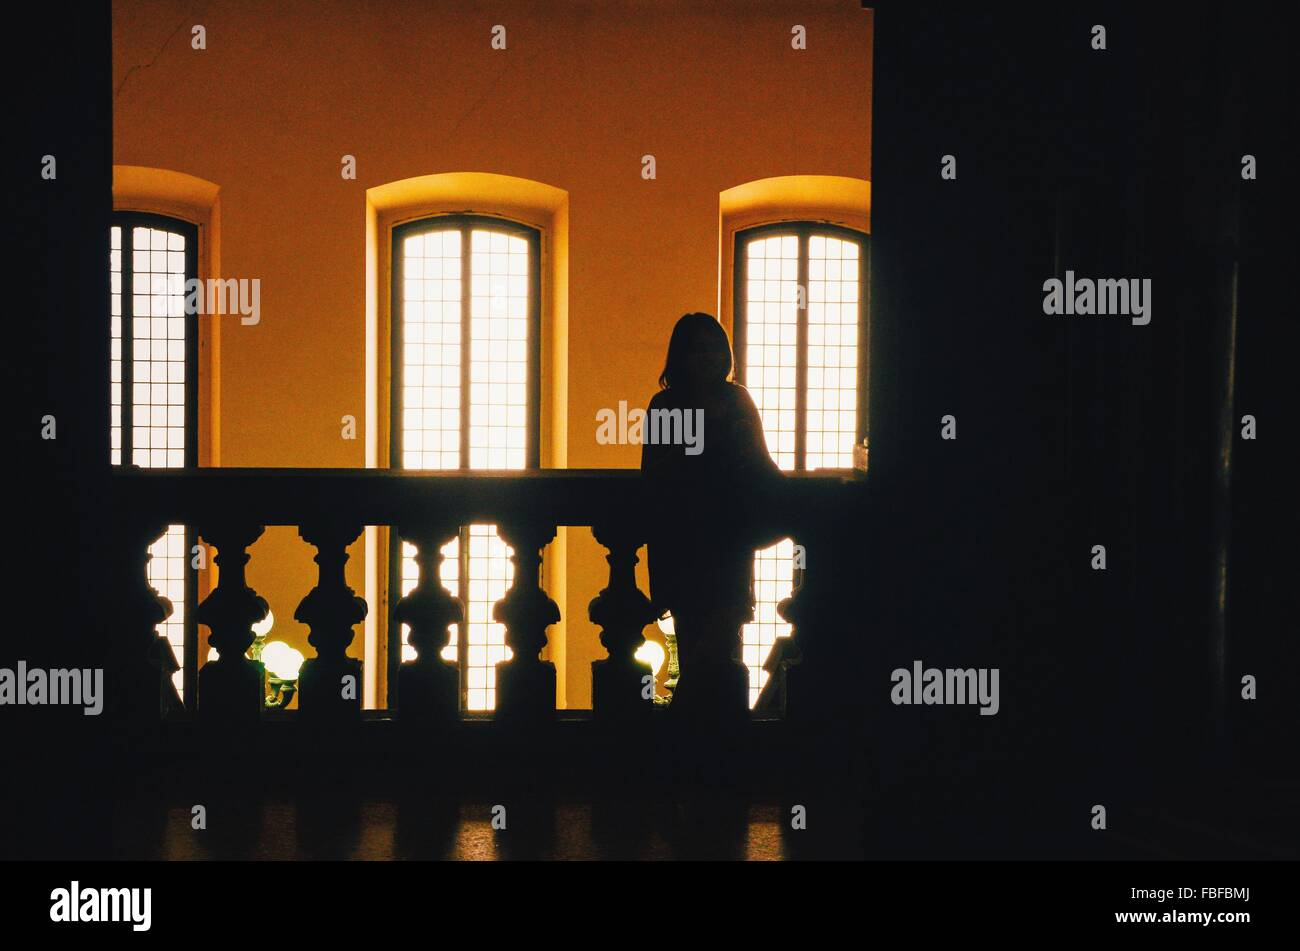 Silhouette Person Standing Against Windows Stock Photo